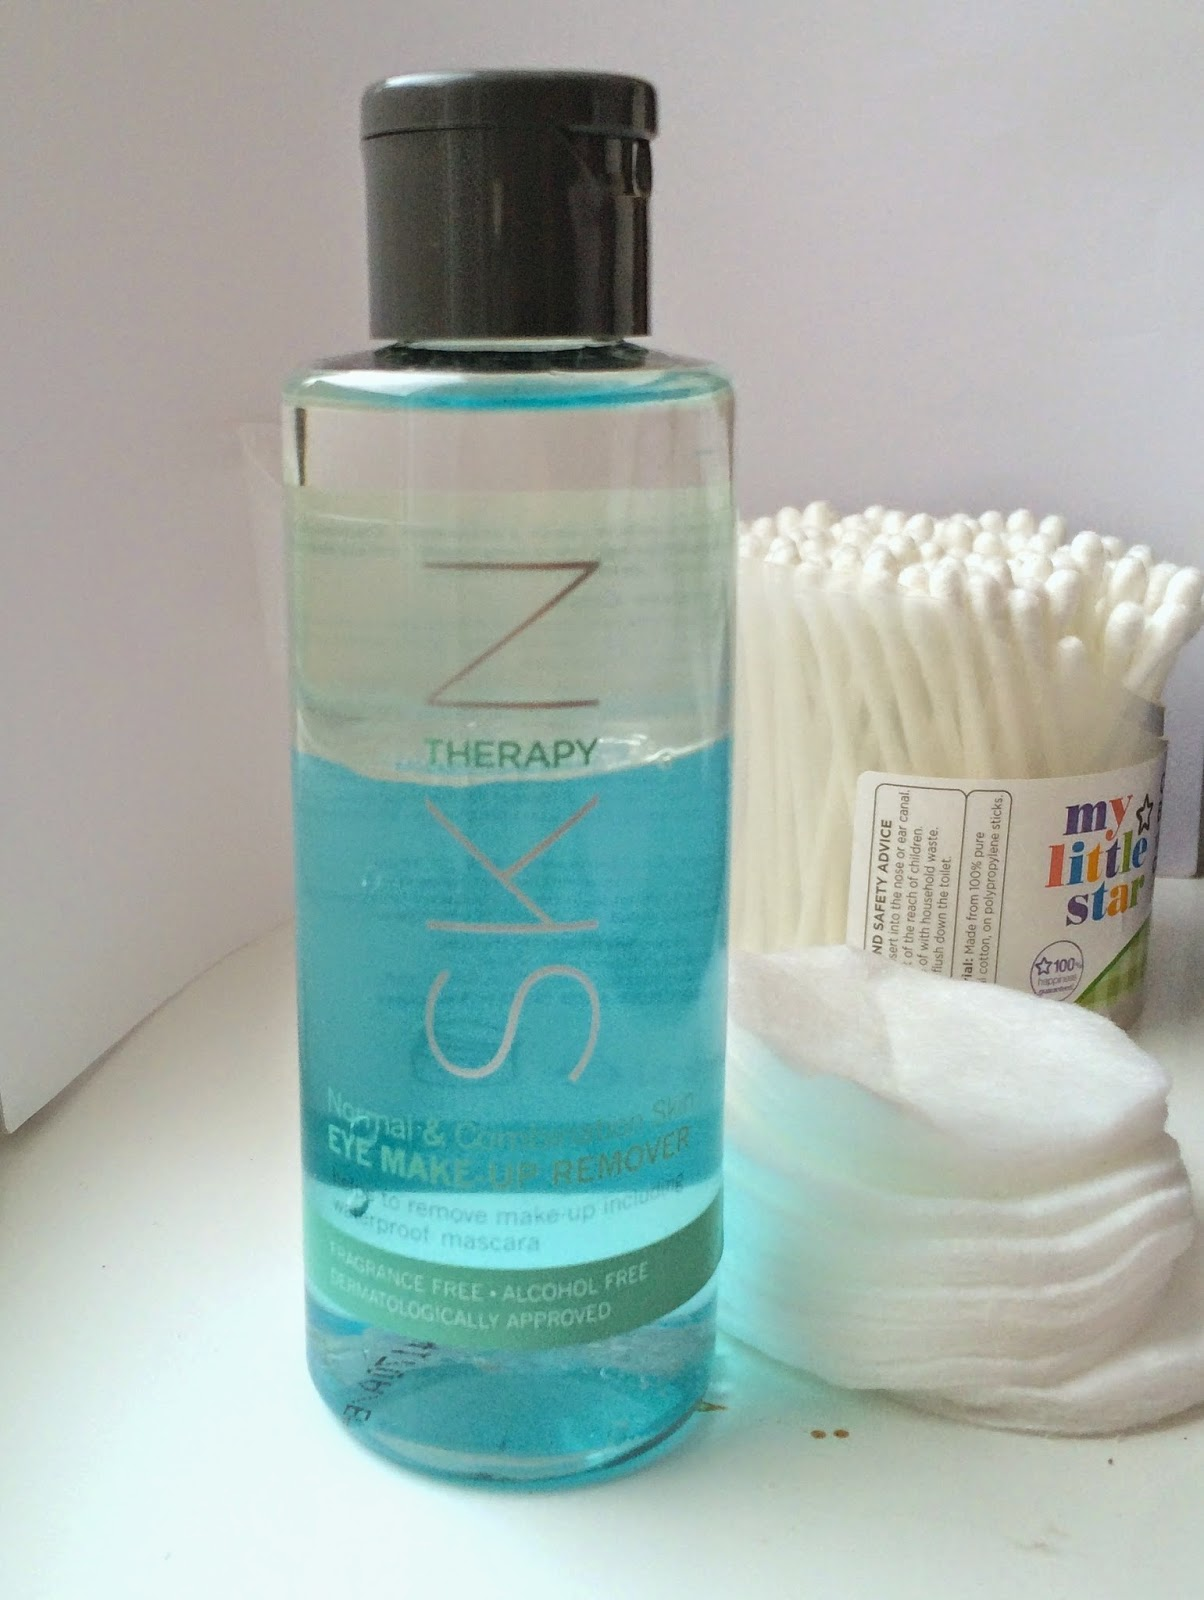 wilko-skin-therapy-eye-make-up-remover-normal-combination